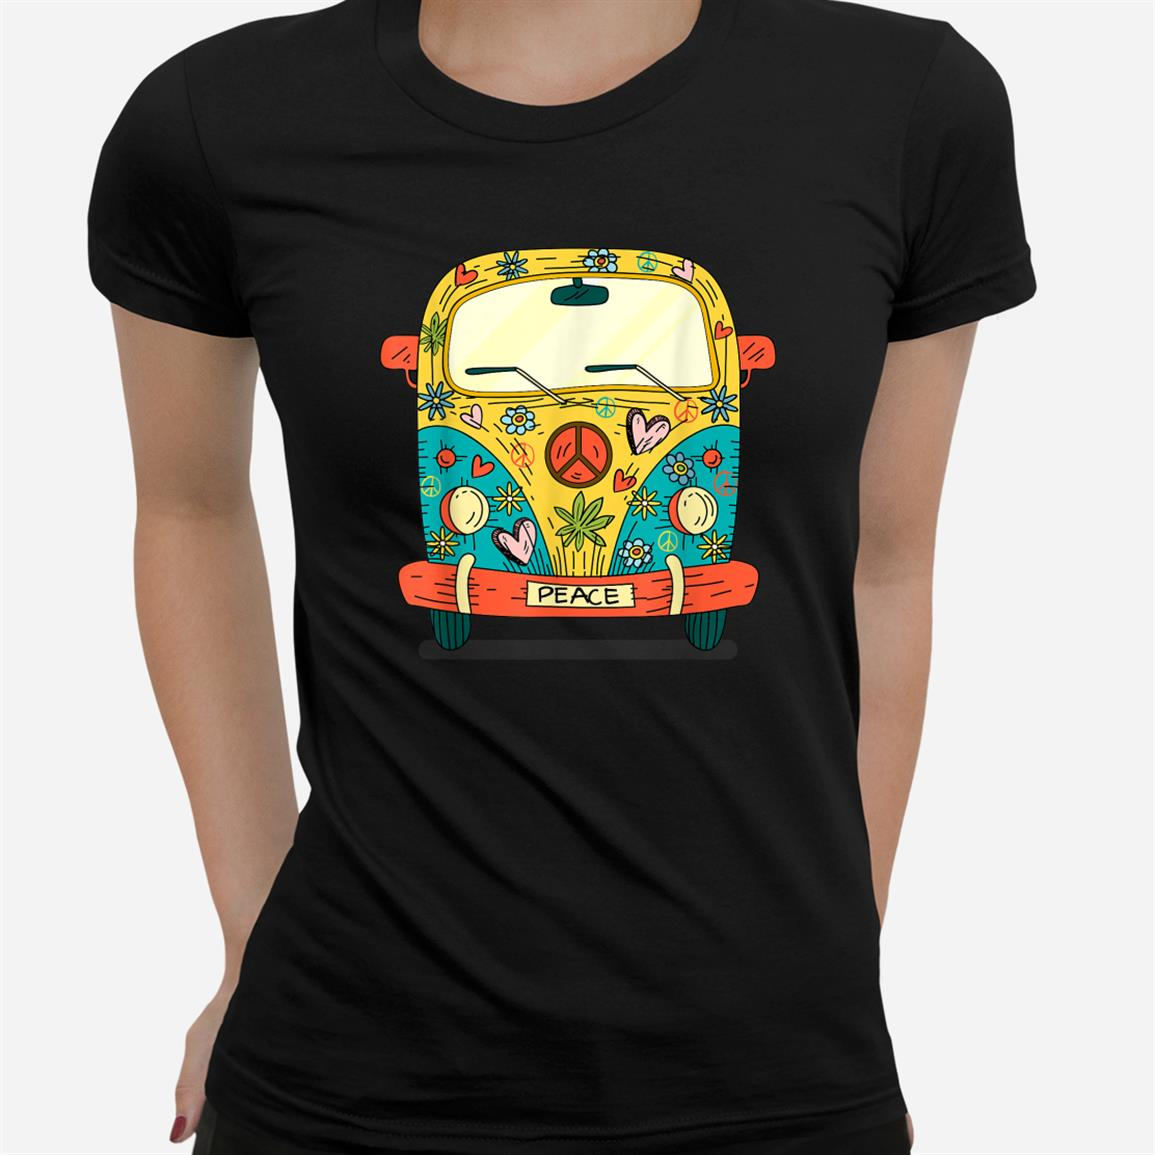 Vintage Hippie Van Flower Bus With Peace Sign Gift 60s 70s Shirt